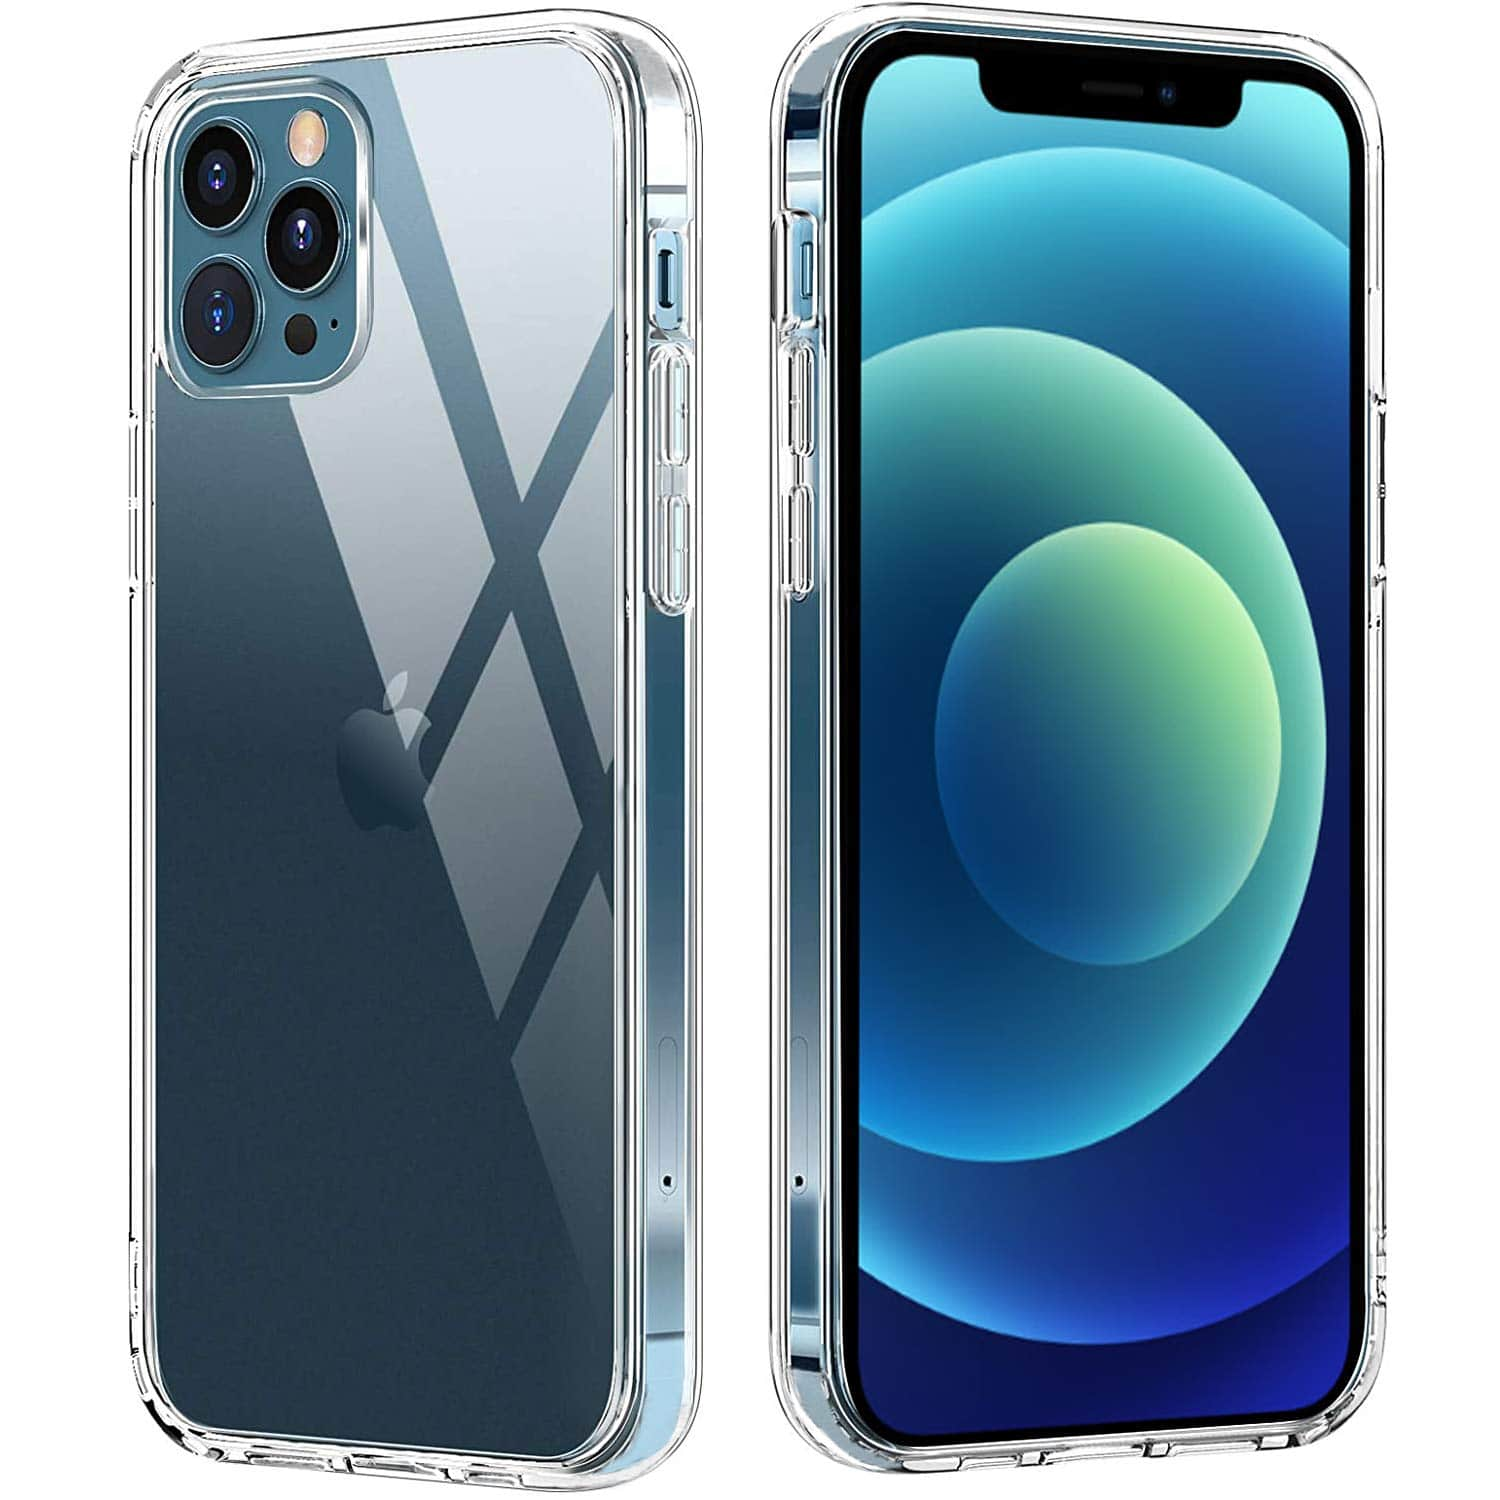 63% Off iPhone 12 Clear Case At $2.99 Free Ship Prime at Amazon